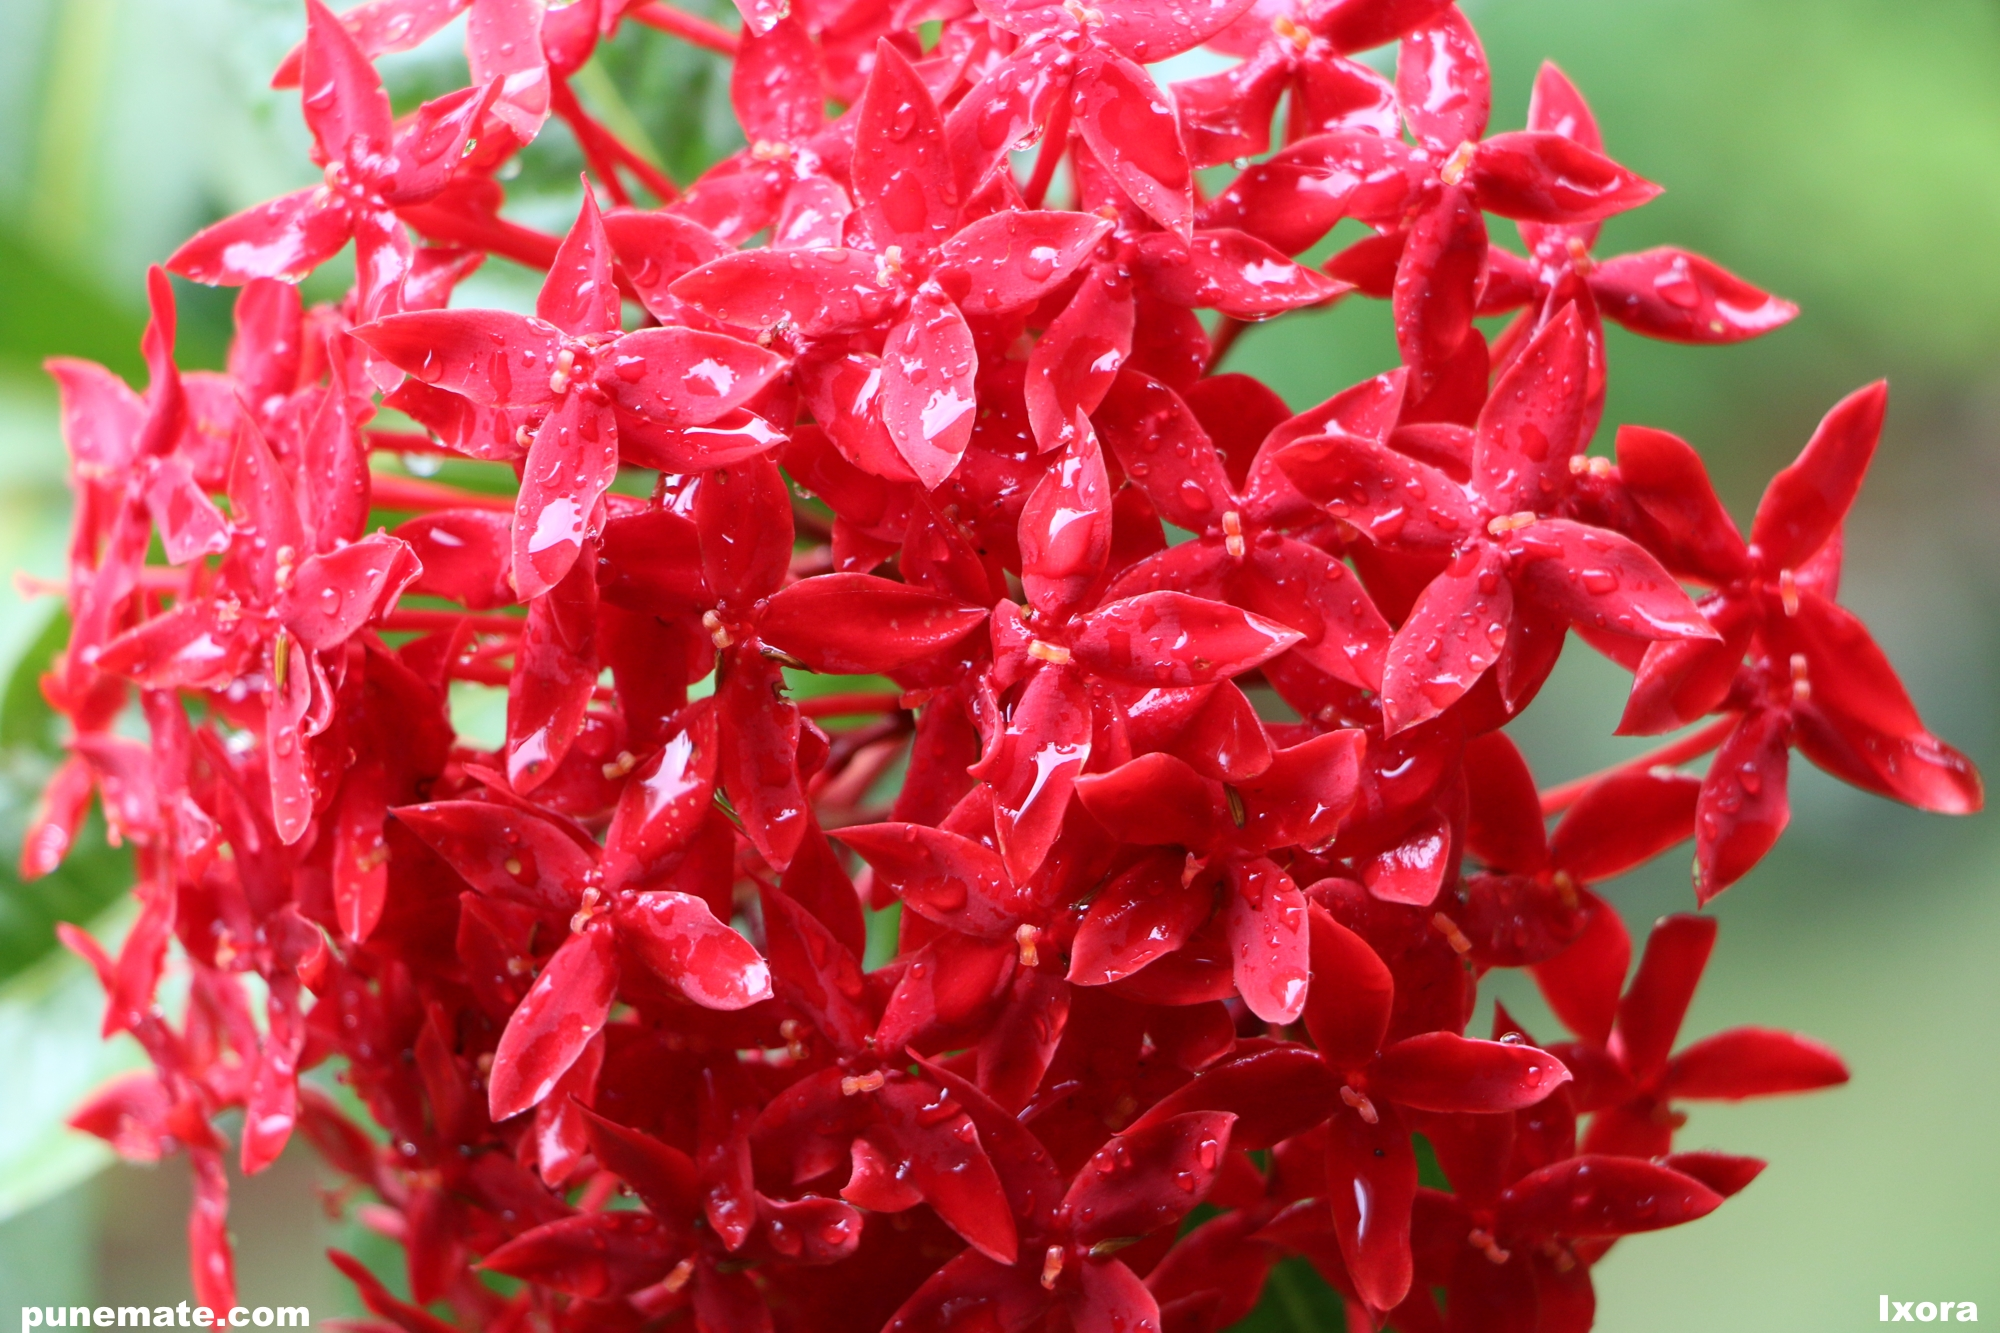 Plants and Flowers of India and Pune Ixora | Punemate